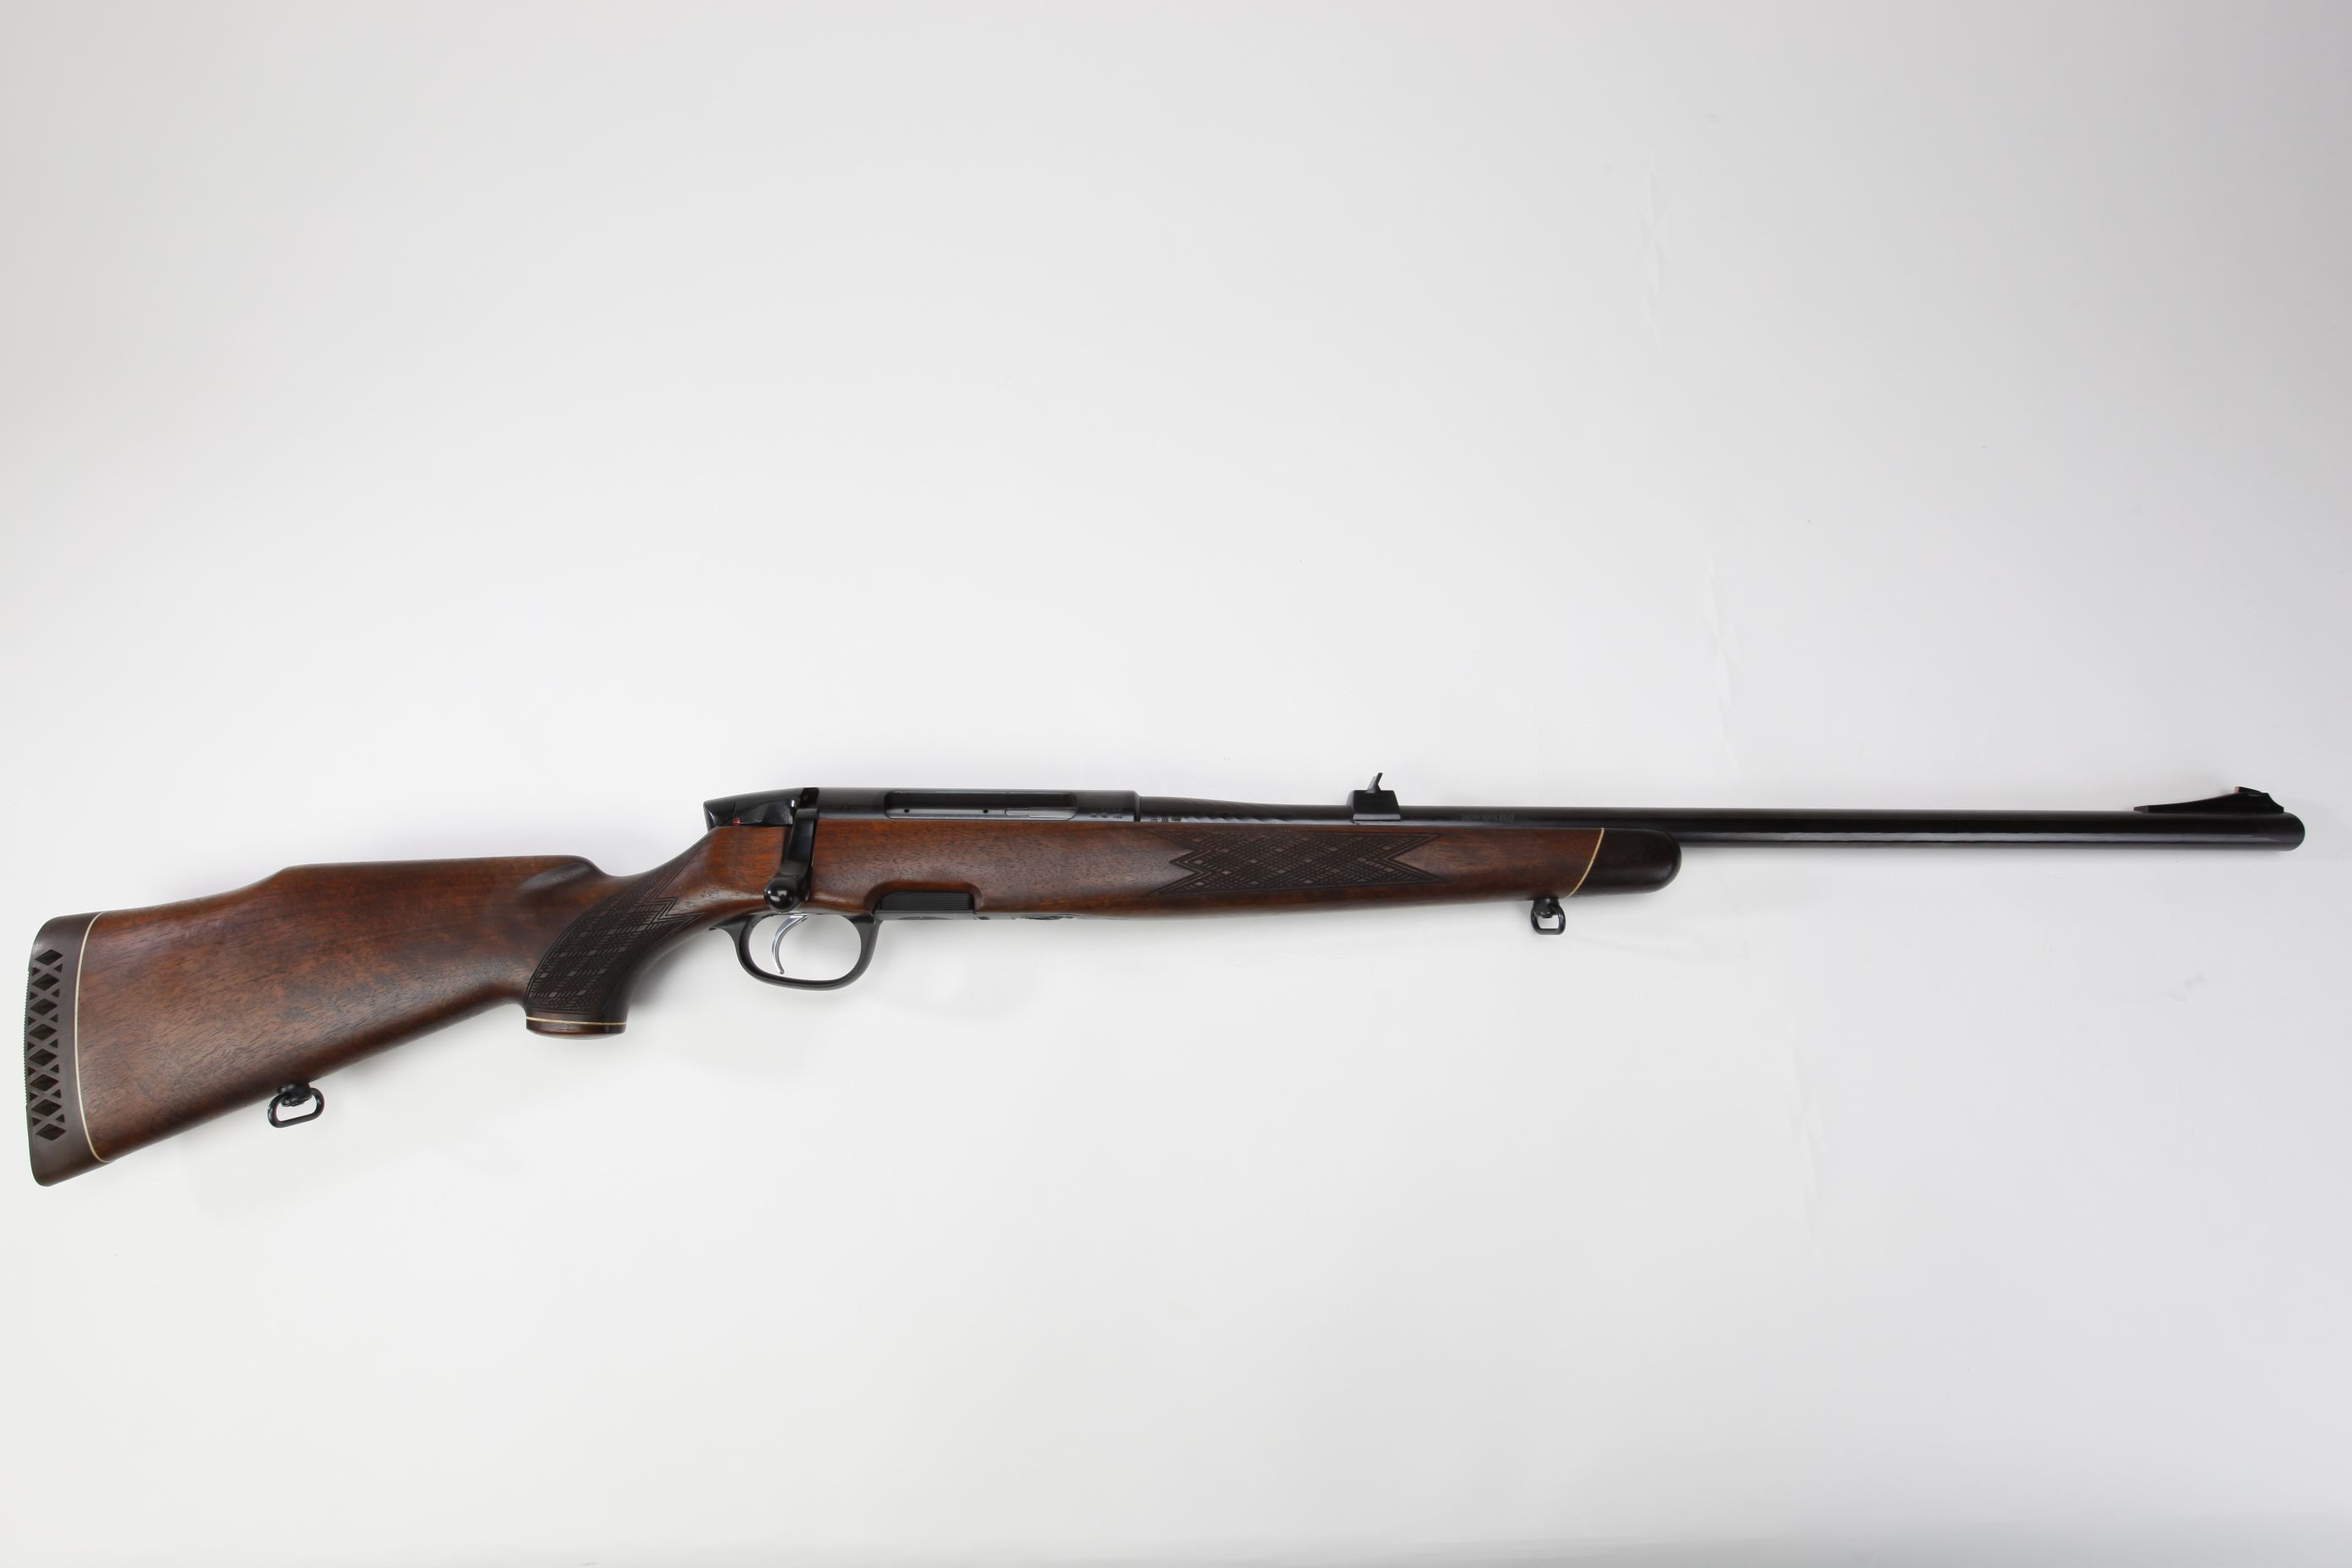 Steyr Mannlicher Model S Bolt Action Rifle